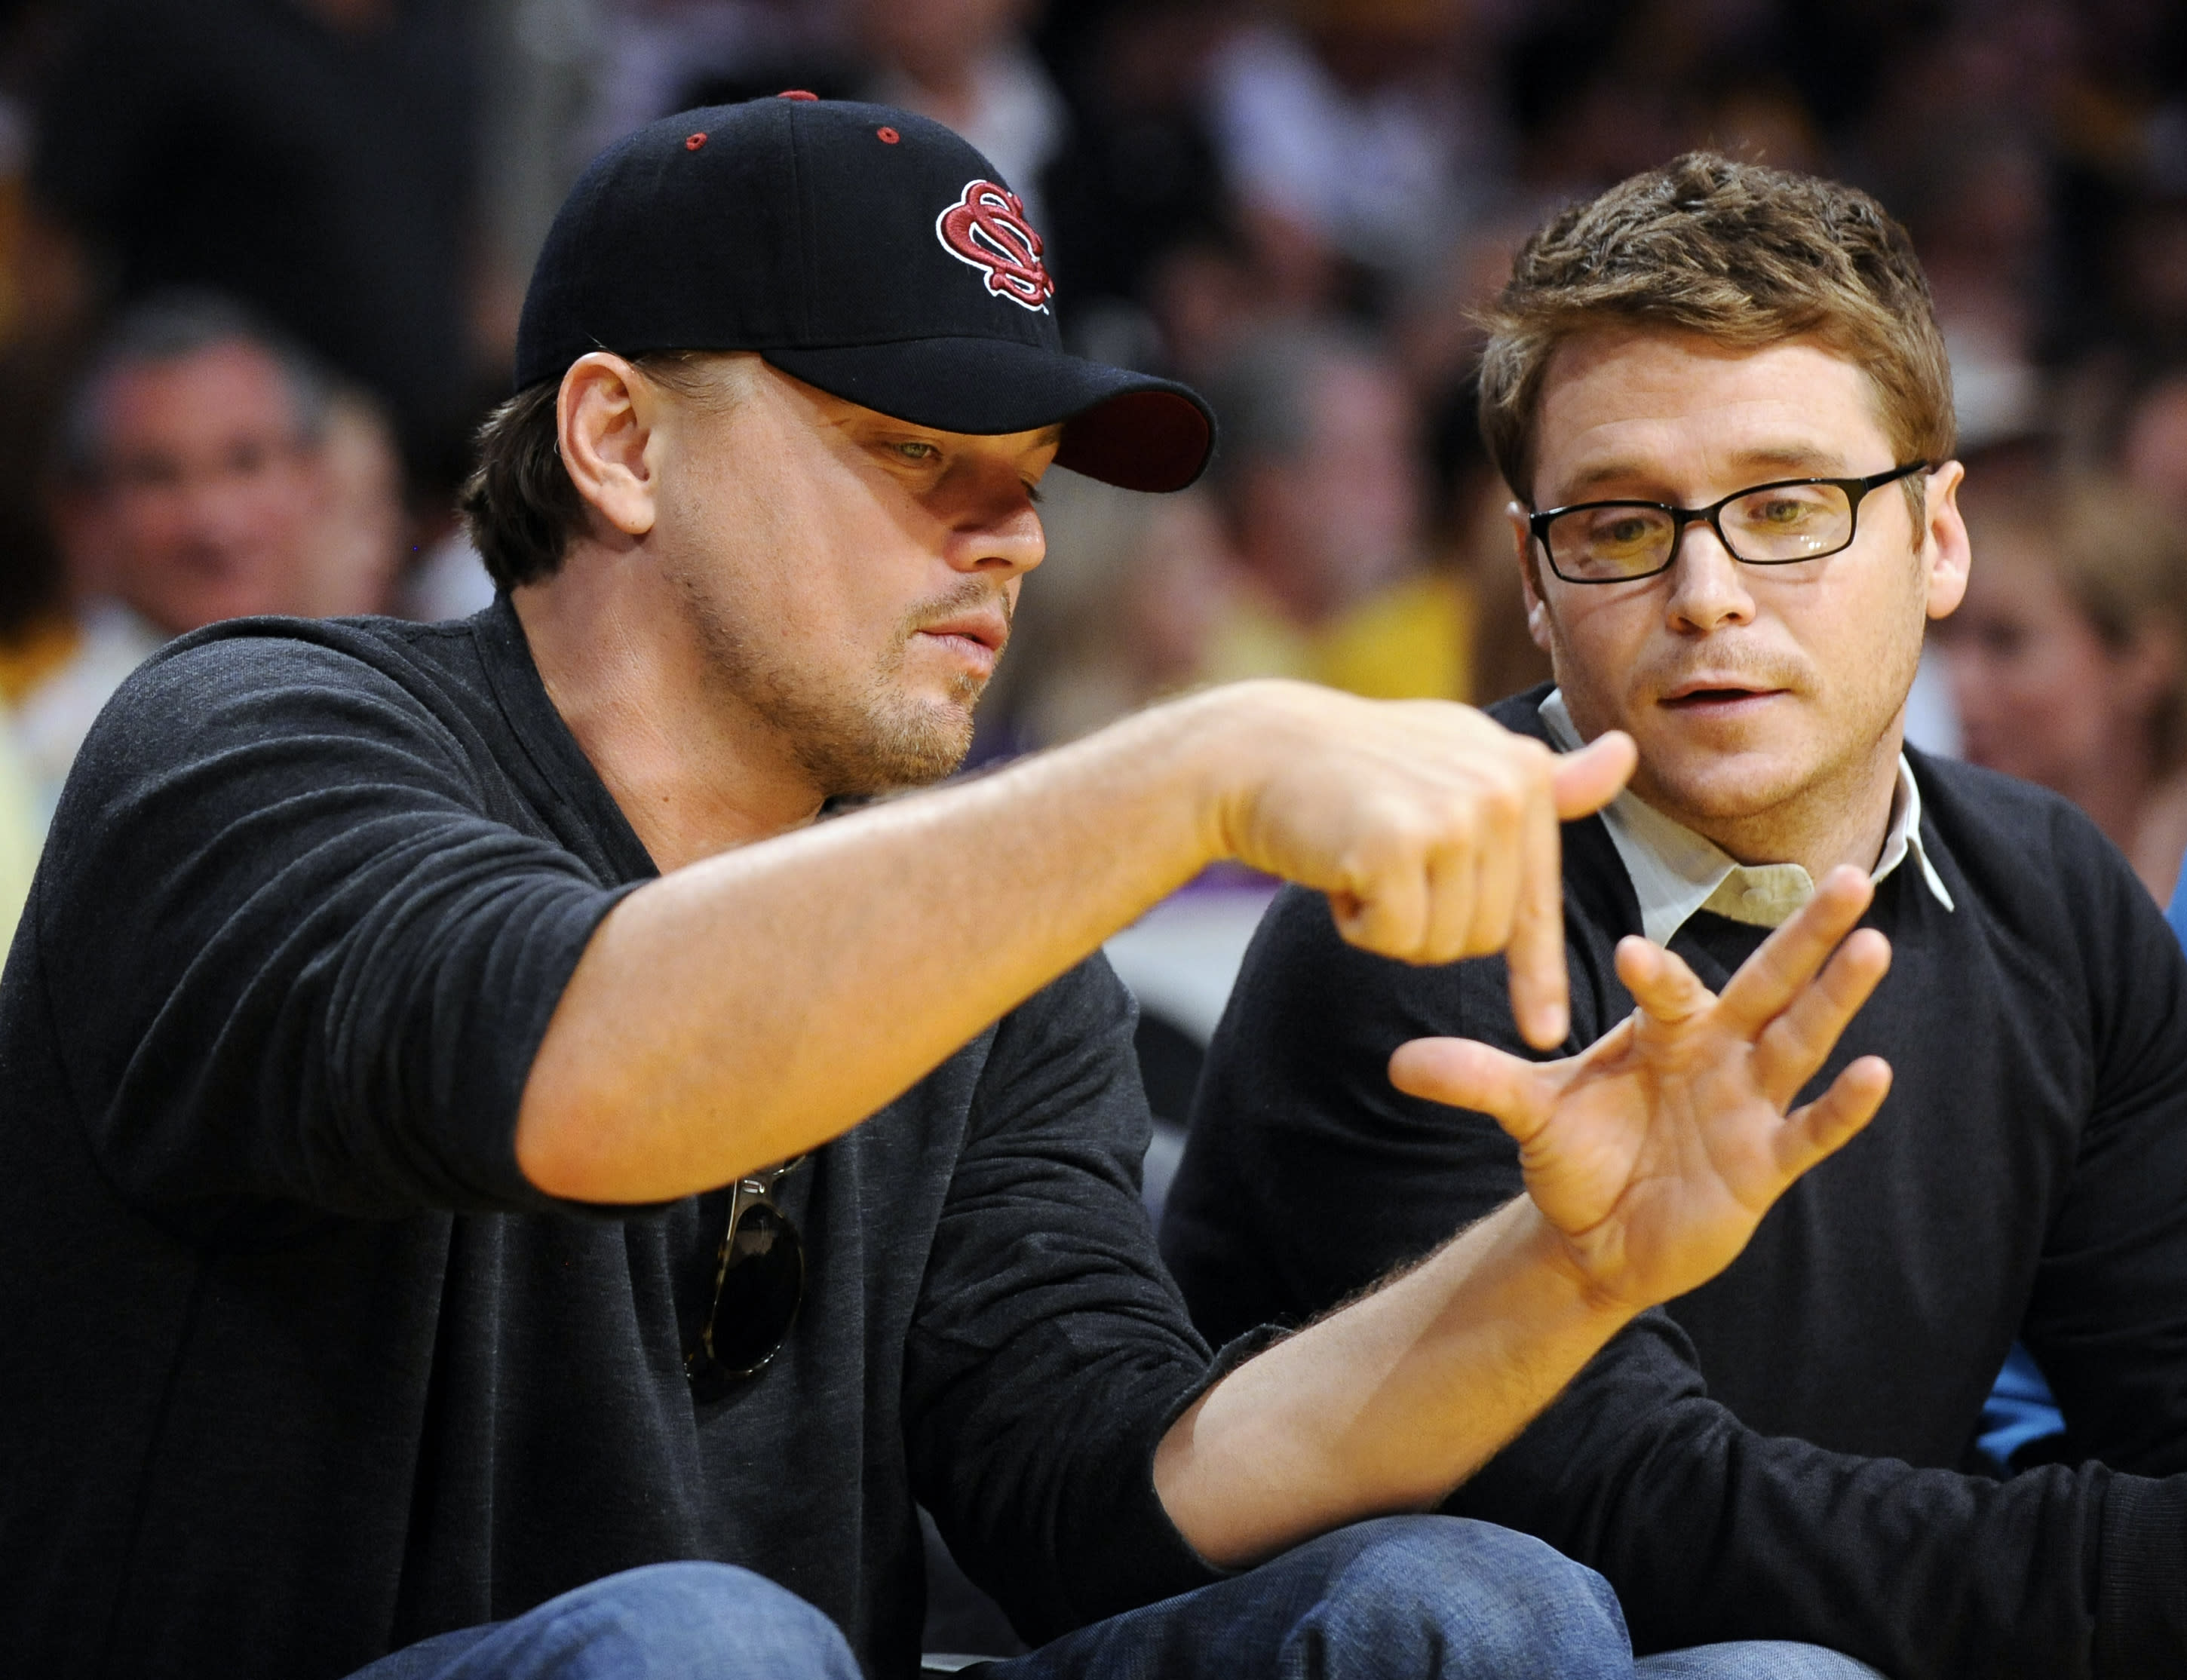 DiCaprio and Connolly - Lakers 'Entourage' Since 1998